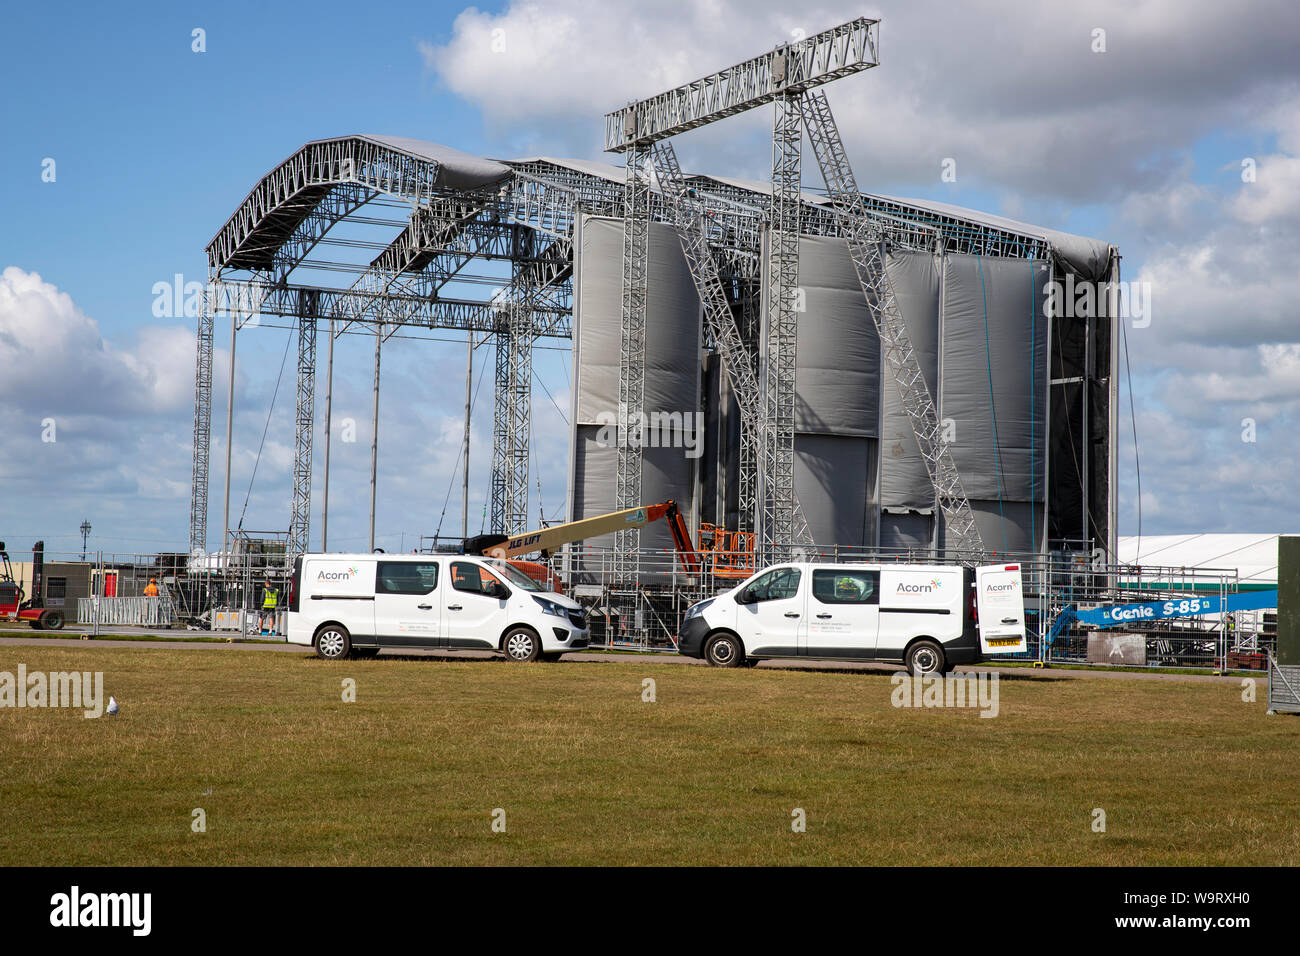 Preparing the stage at Southsea Common for the Victorious Festival at the end of August 2019 Stock Photo